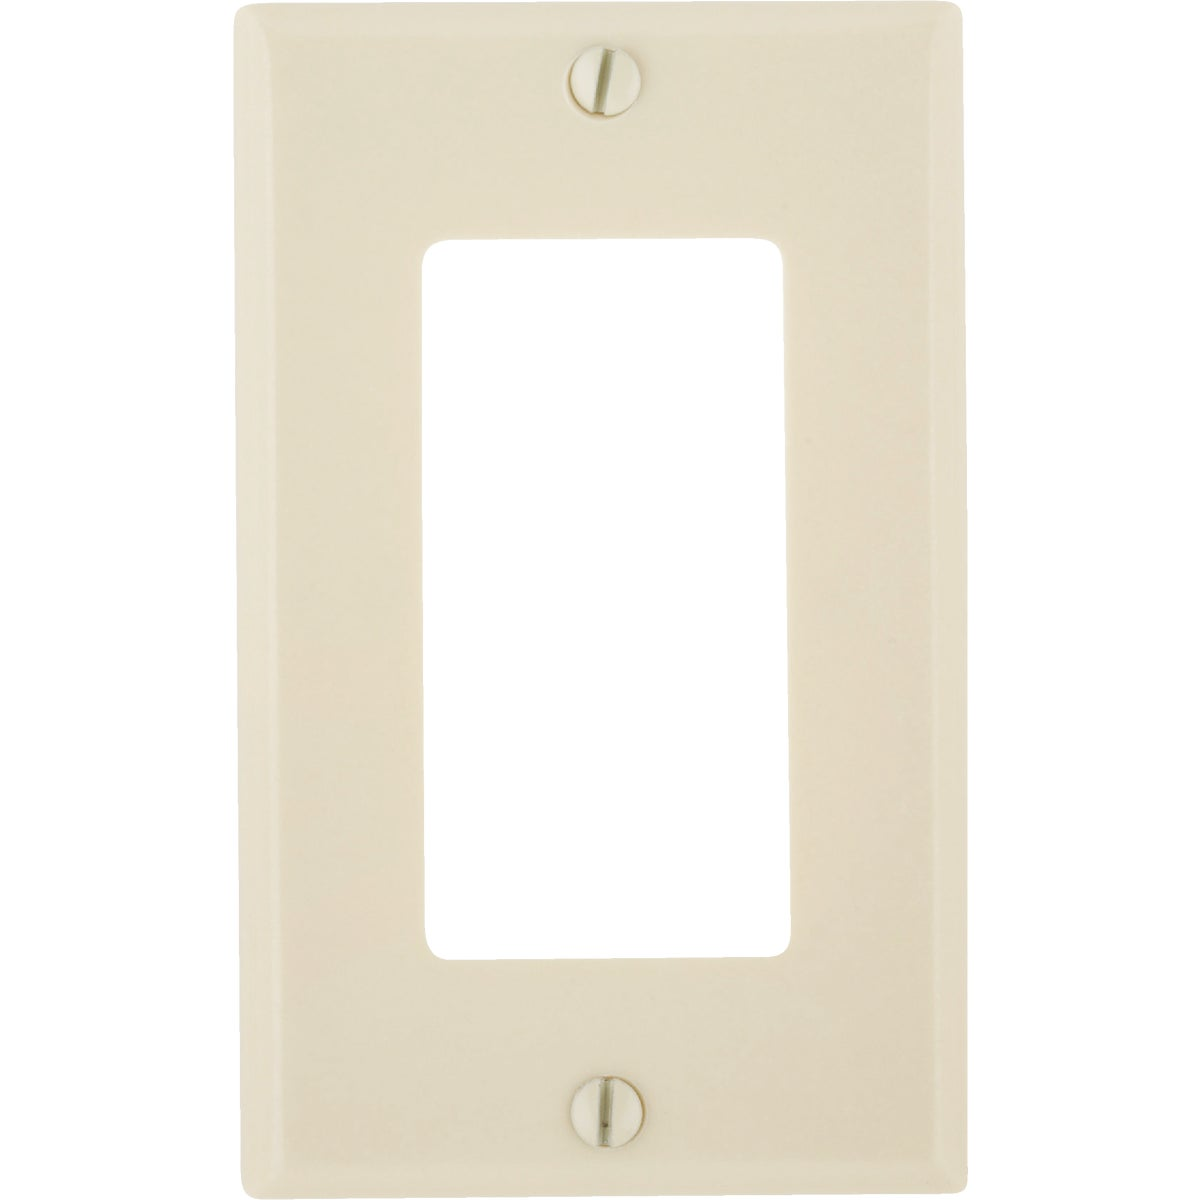 IV ROCKER WALL PLATE - 02080401I by Leviton Mfg Co